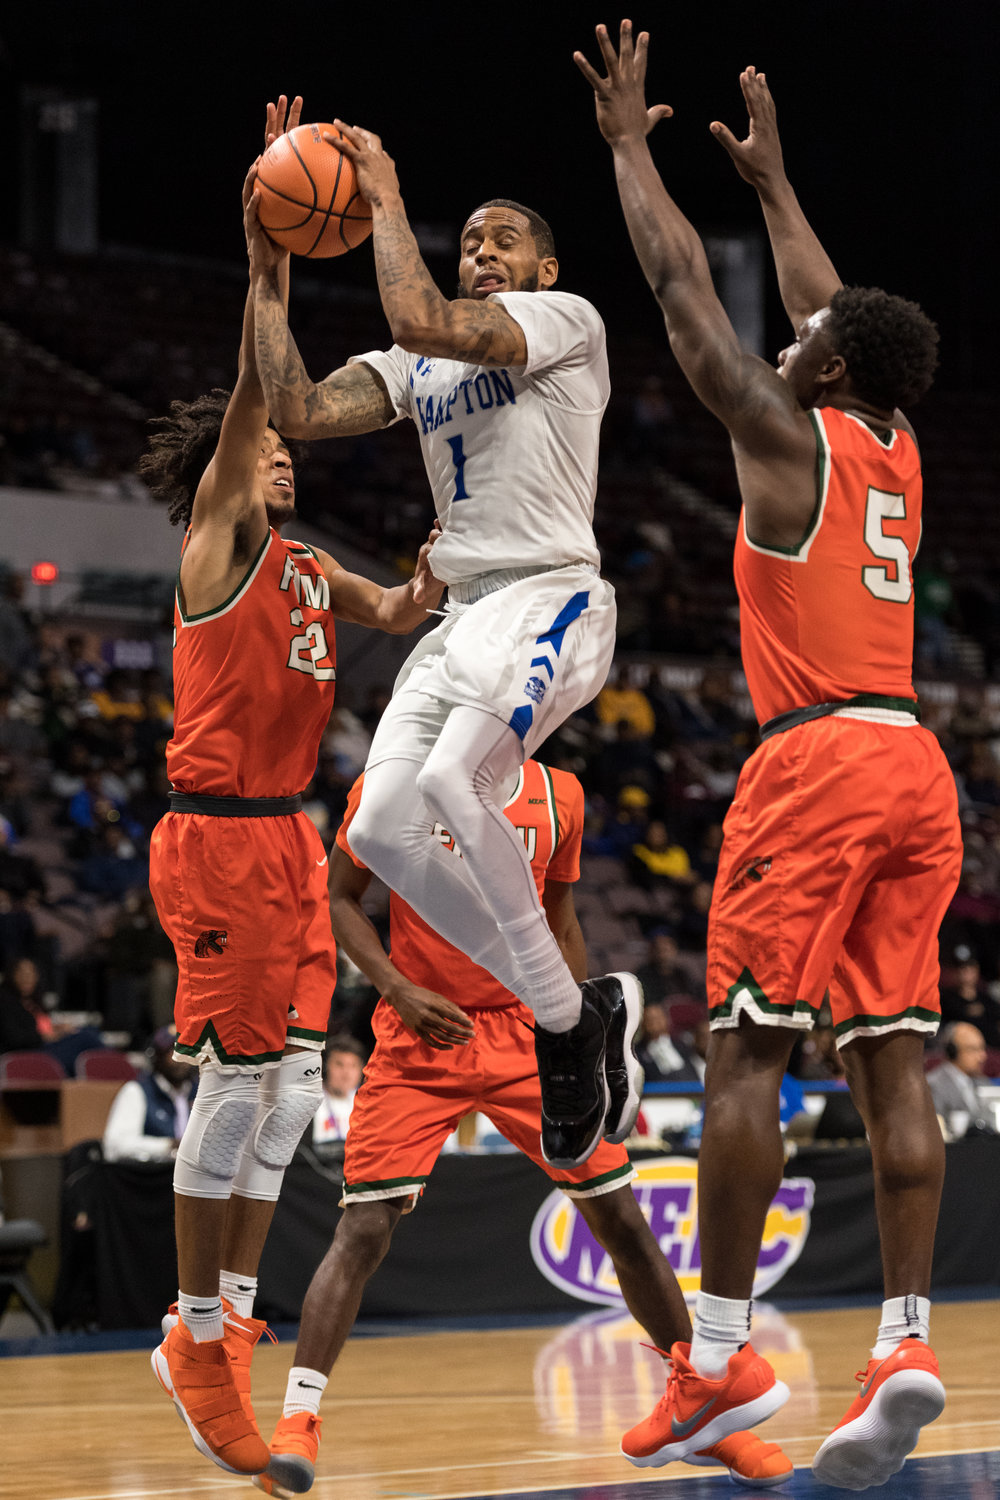 Hampton Pirates guard Malique Trent-Street (1) takes a shot against Florida A&M Rattlers guard Marcus Barham (22) and guard Nasir Core (5) during the Wednesday, March 7, 2018 game held at Norfolk Scope Arena. Hampton defeated Florida A&M 75 to 71.